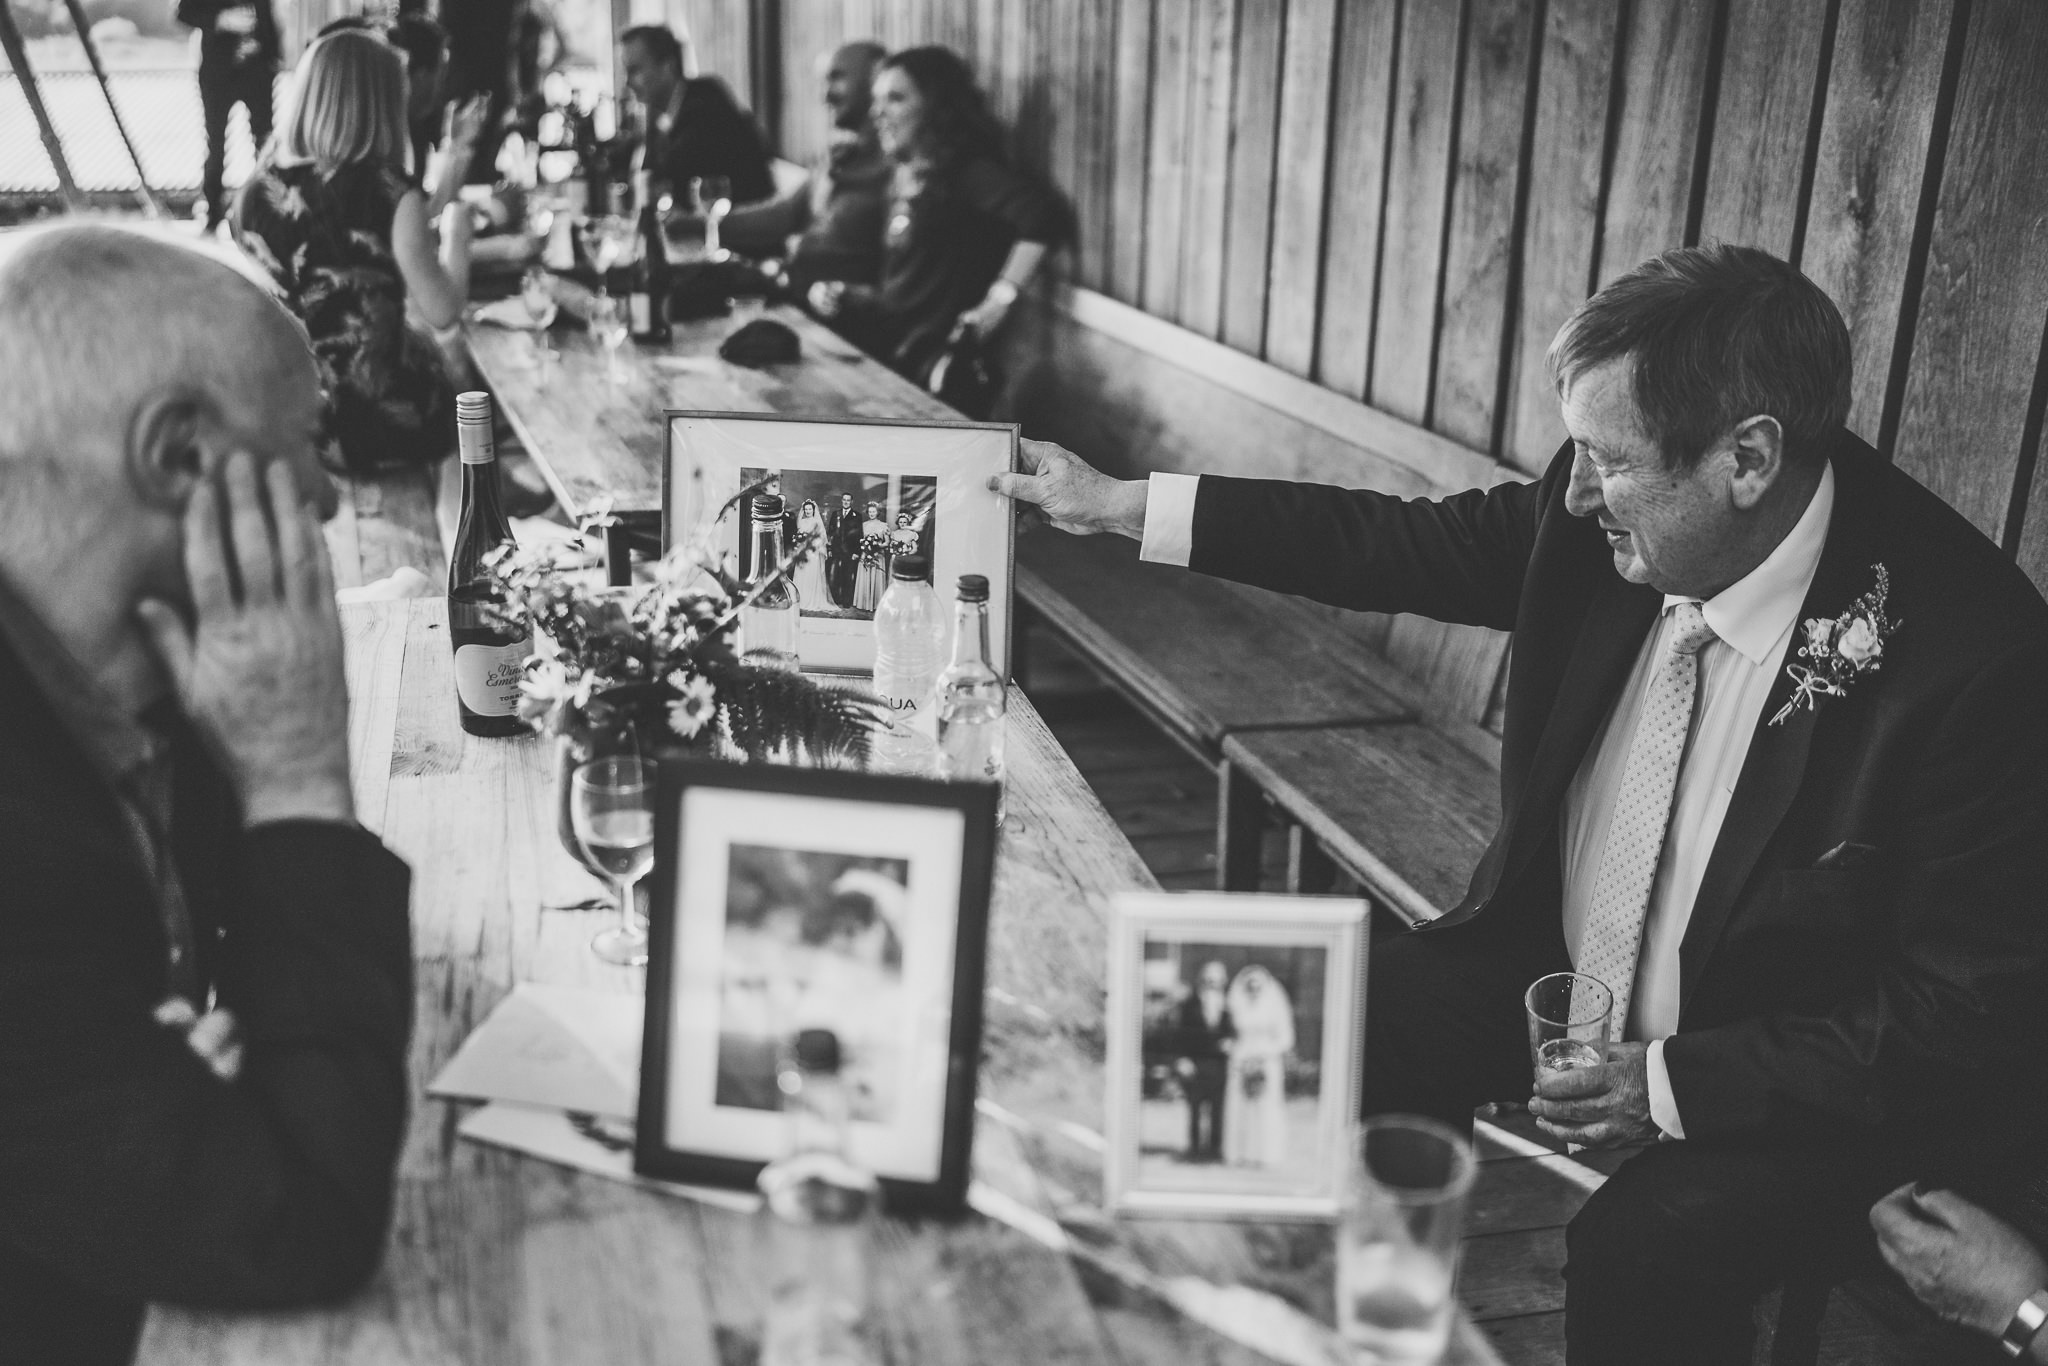 paul-marbrook-best-wedding-photographer-north-wales-110135